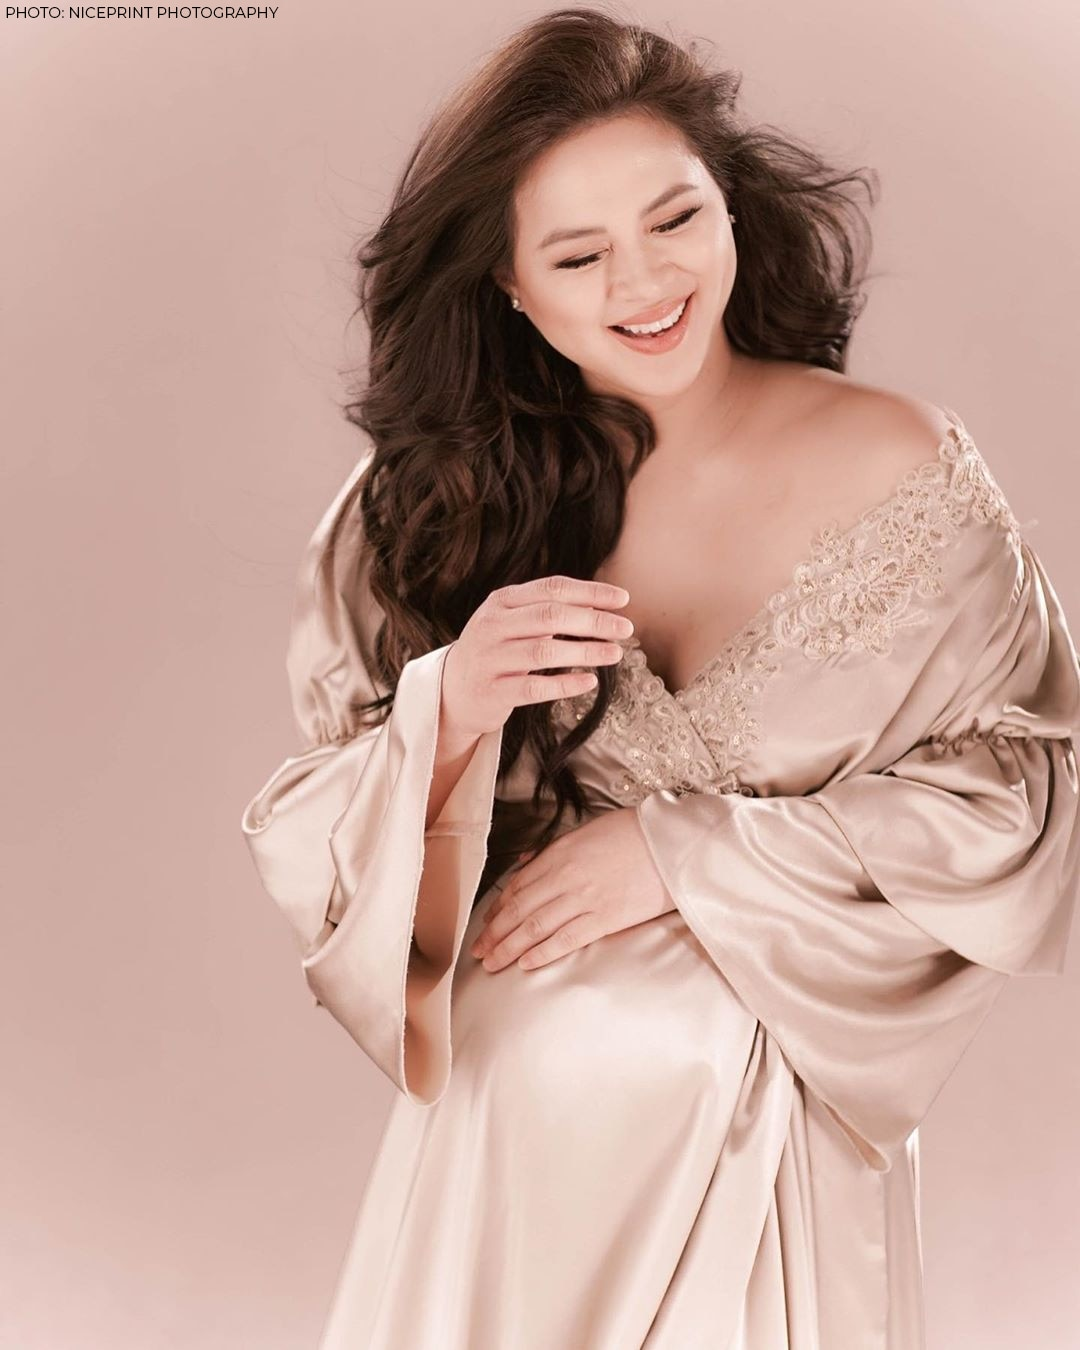 Lara Quigaman is glowing in her maternity shoot!